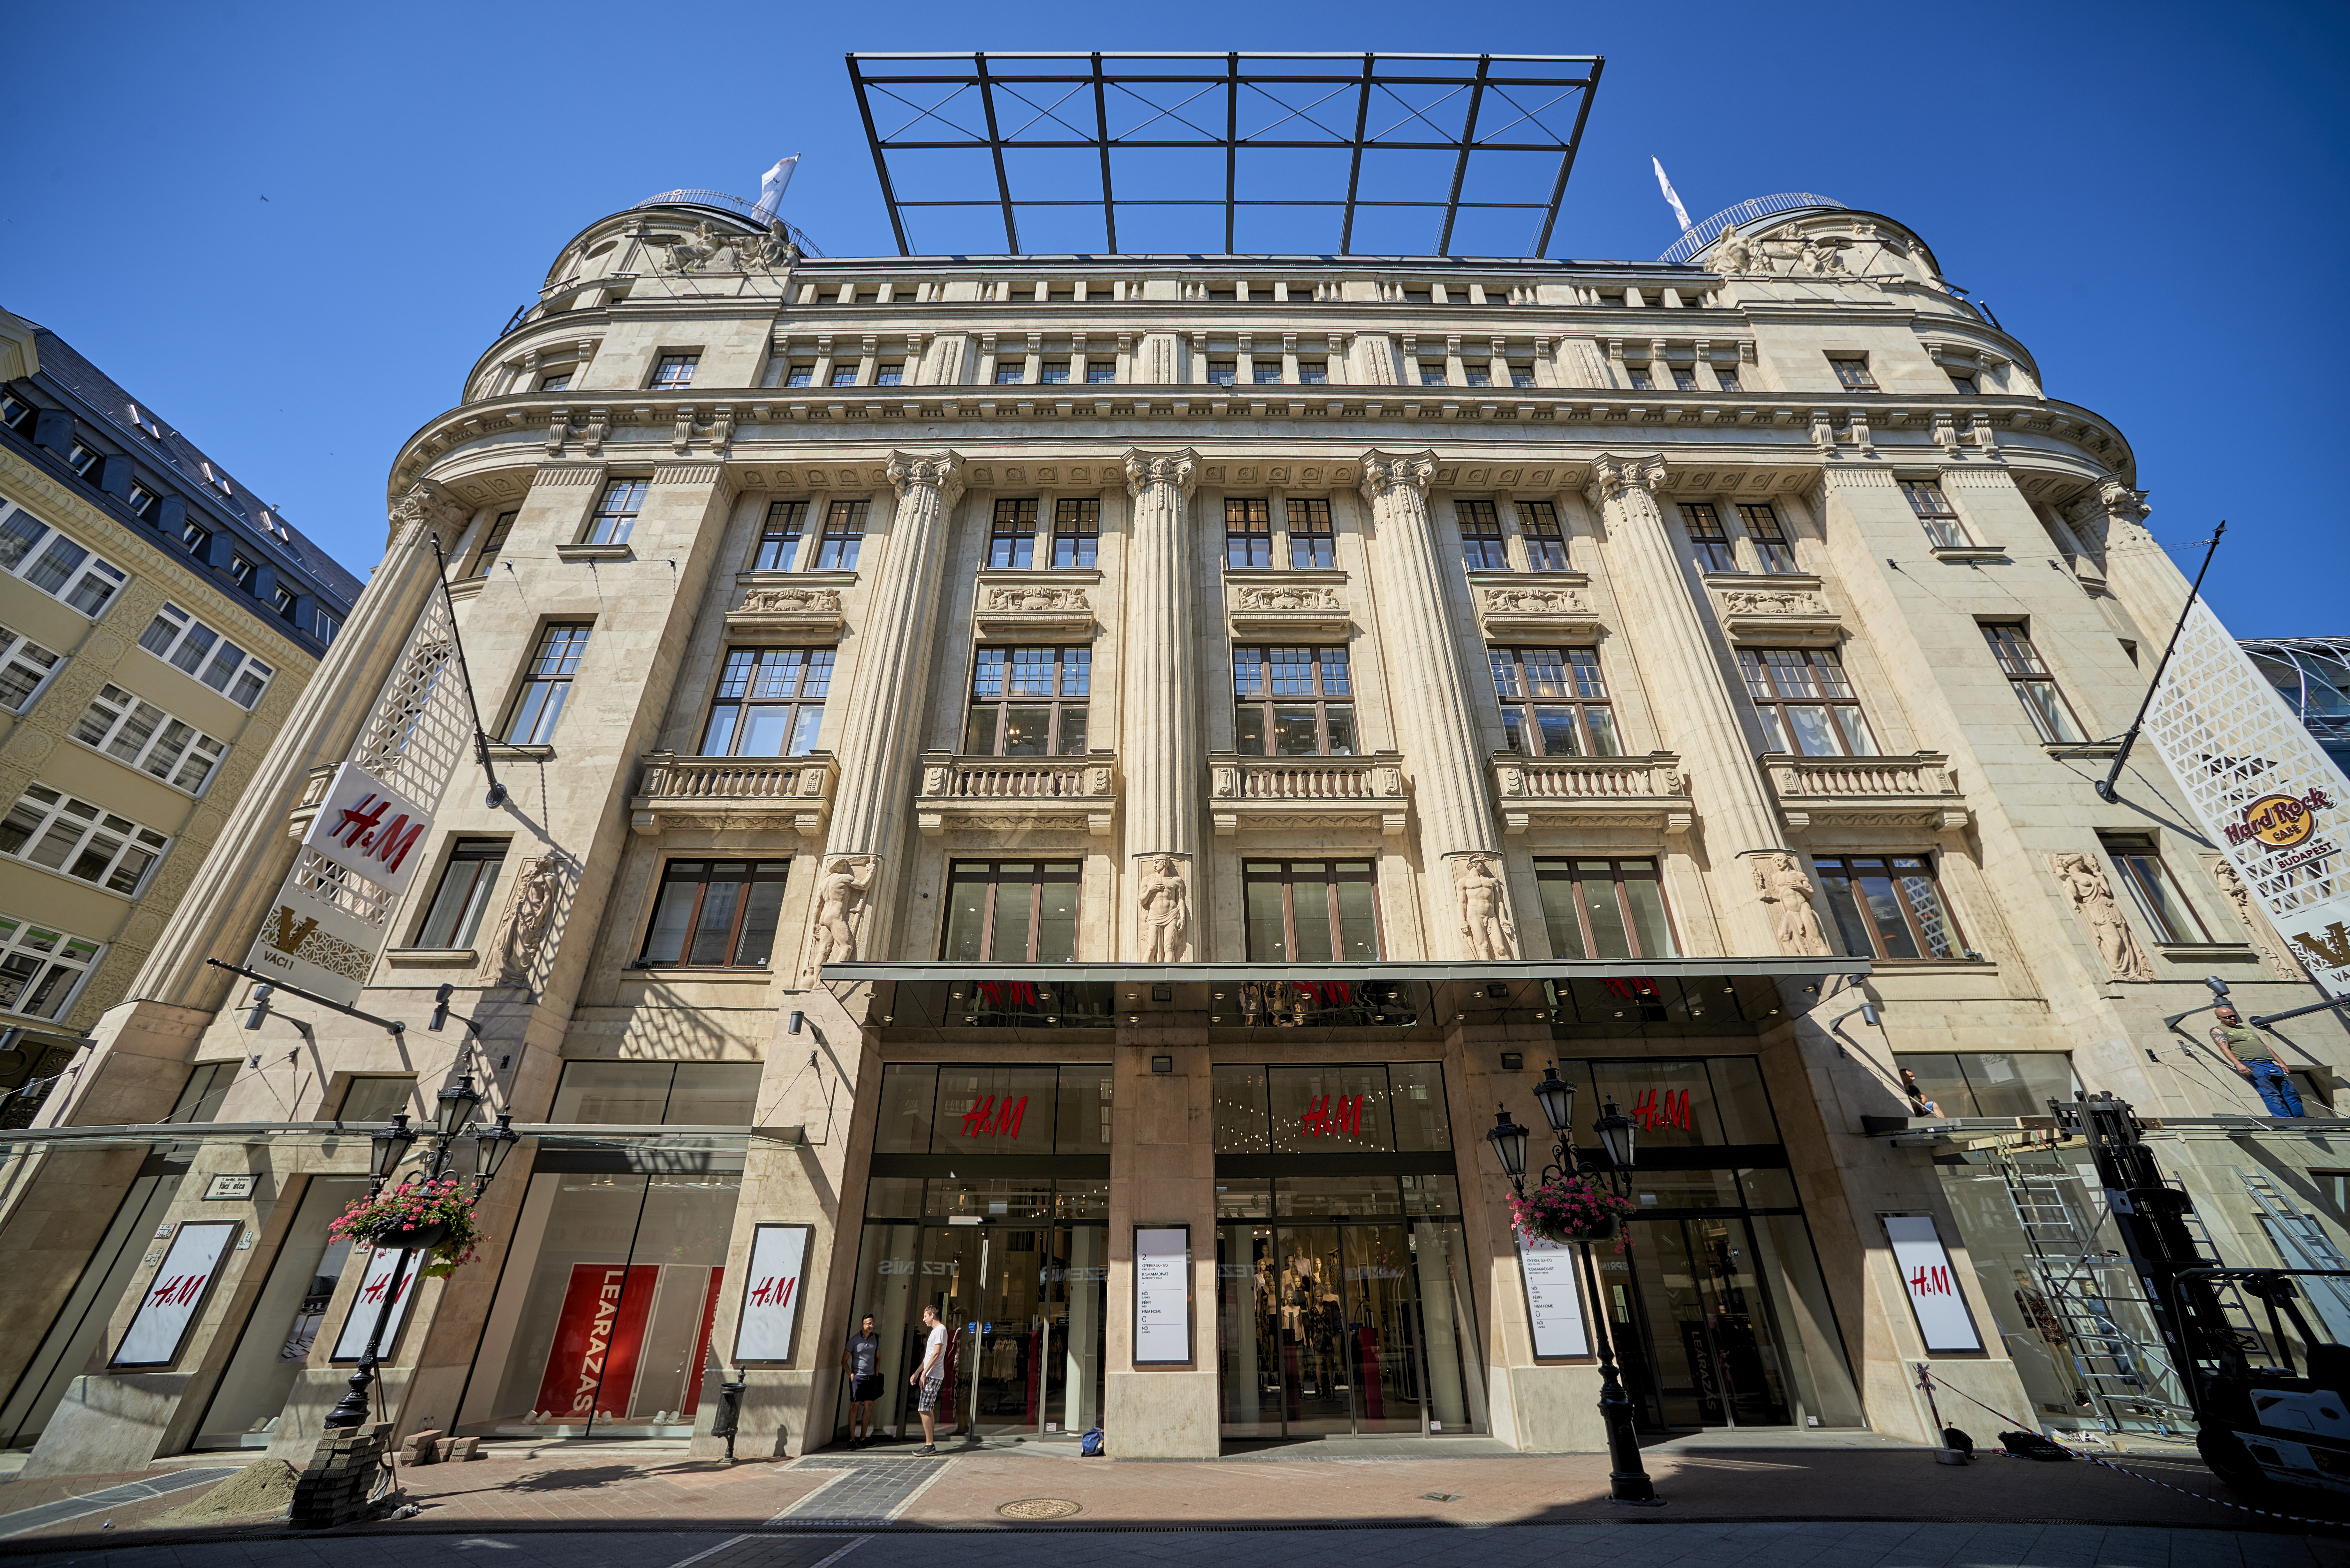 25._facade_and_entrance_to_the_retail_area_vaci1_budapest_hungary